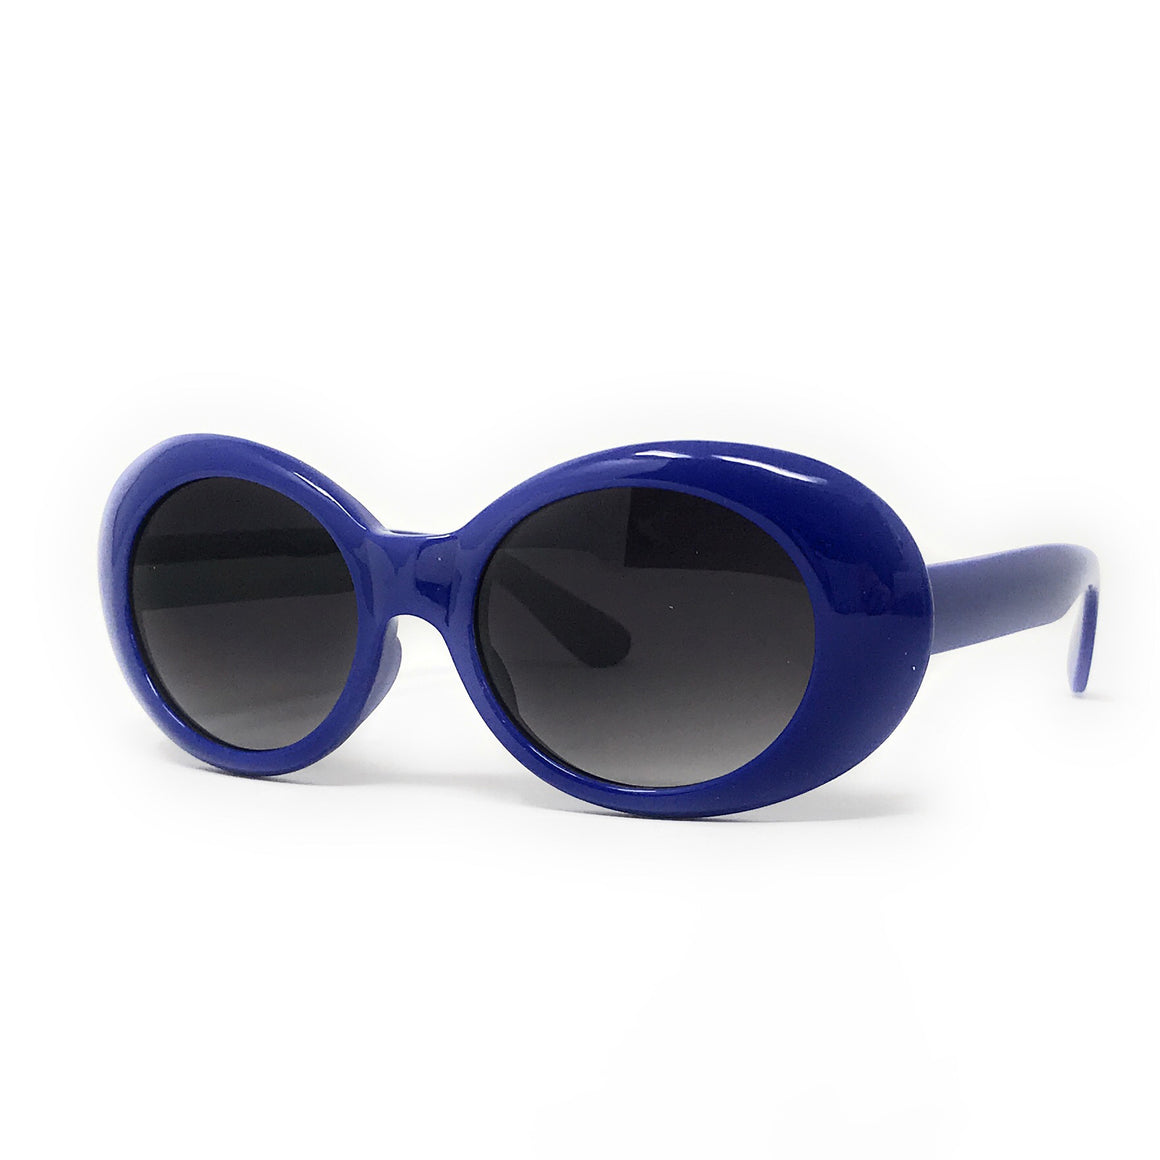 Royal Blue 1960s Vintage Sunglasses